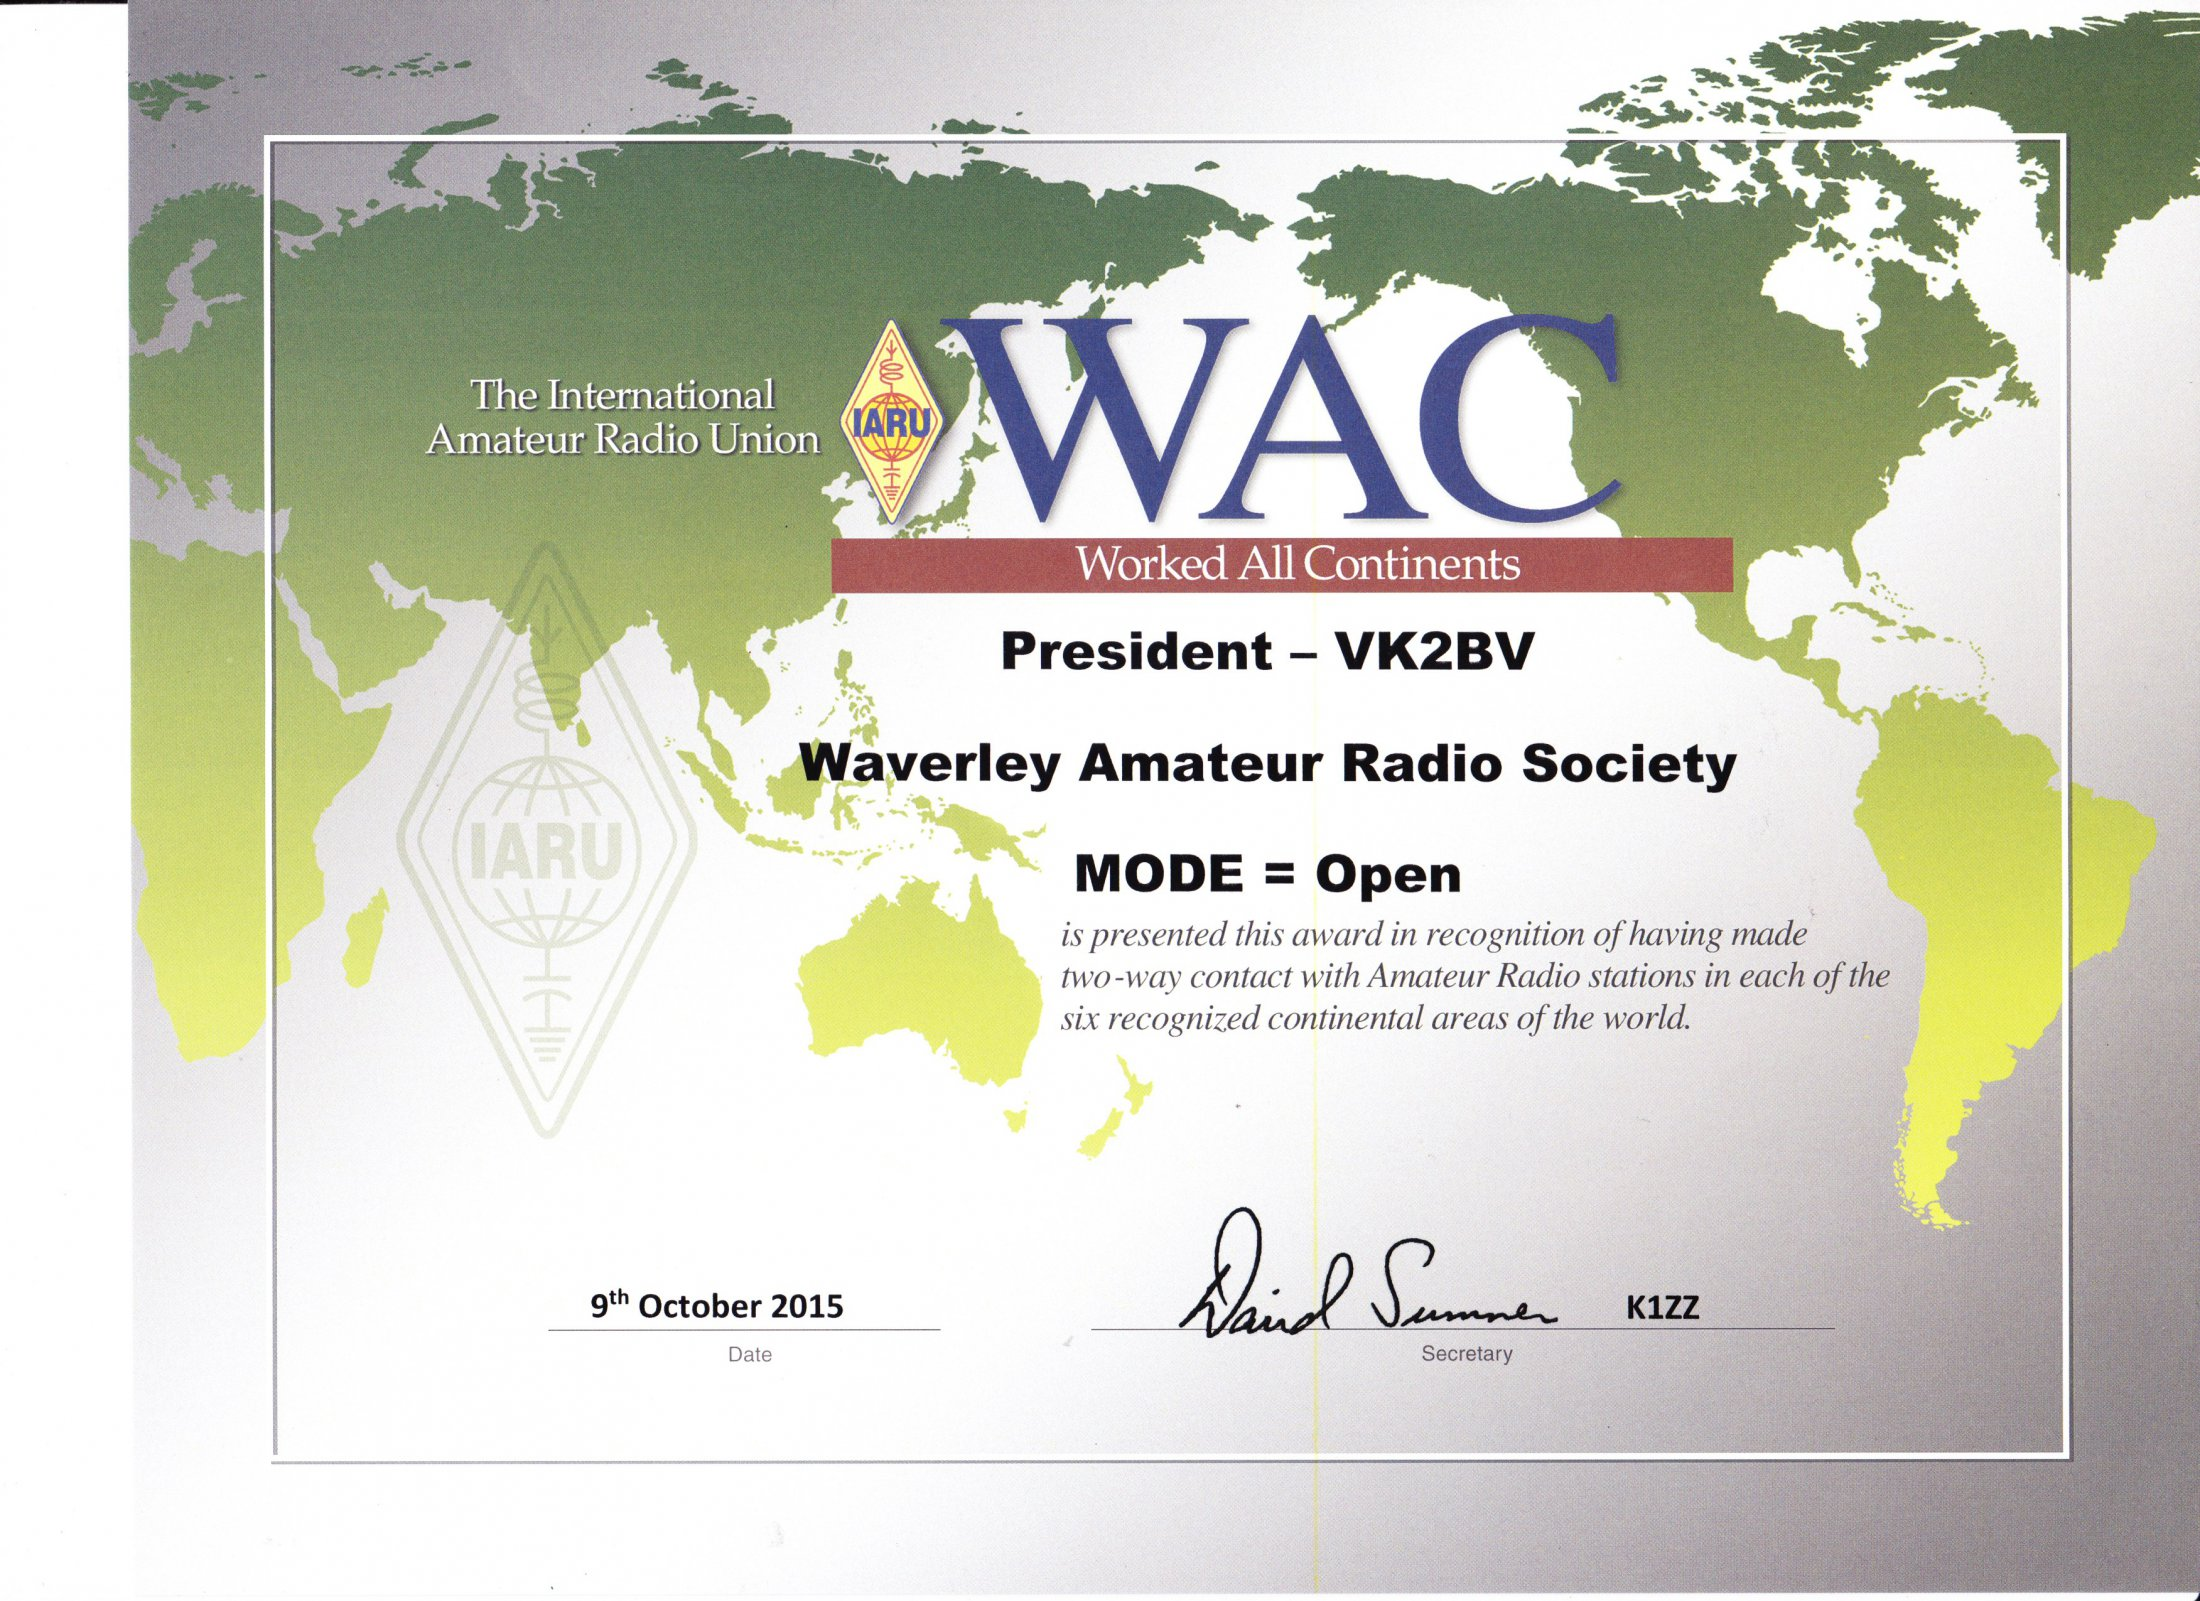 IARU Worked All Continents Award - Open